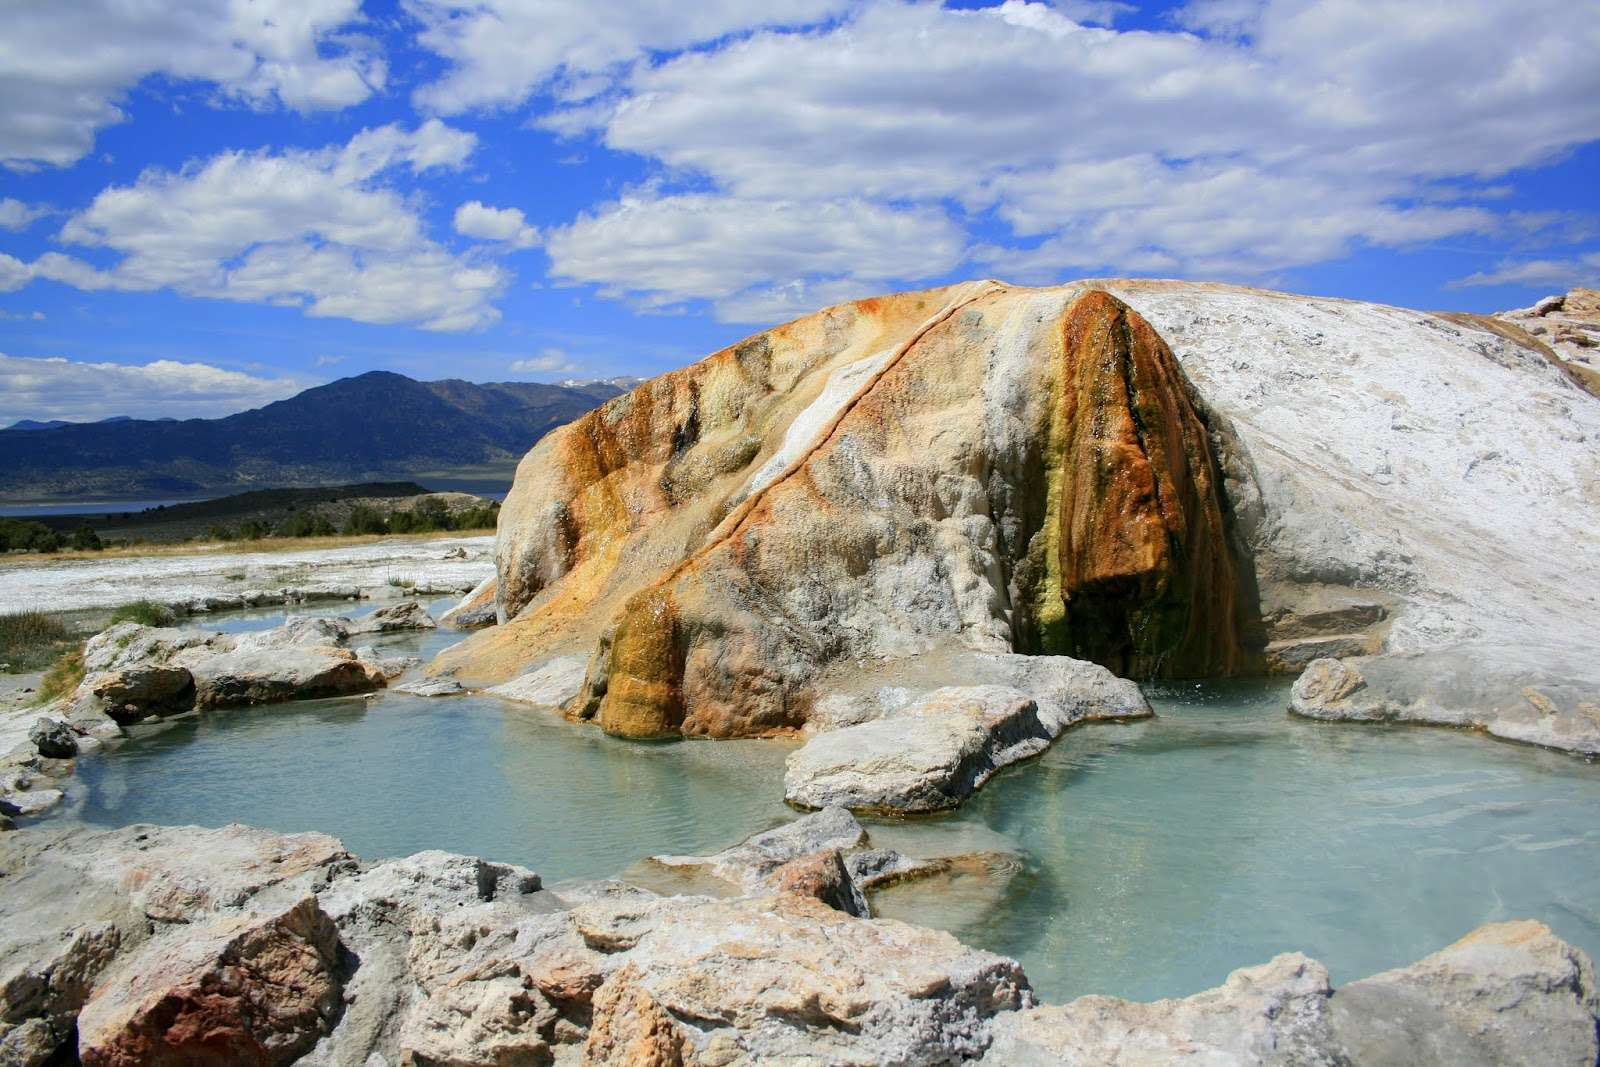 Camping By Hot Springs With Some Comforts Of Home Such As